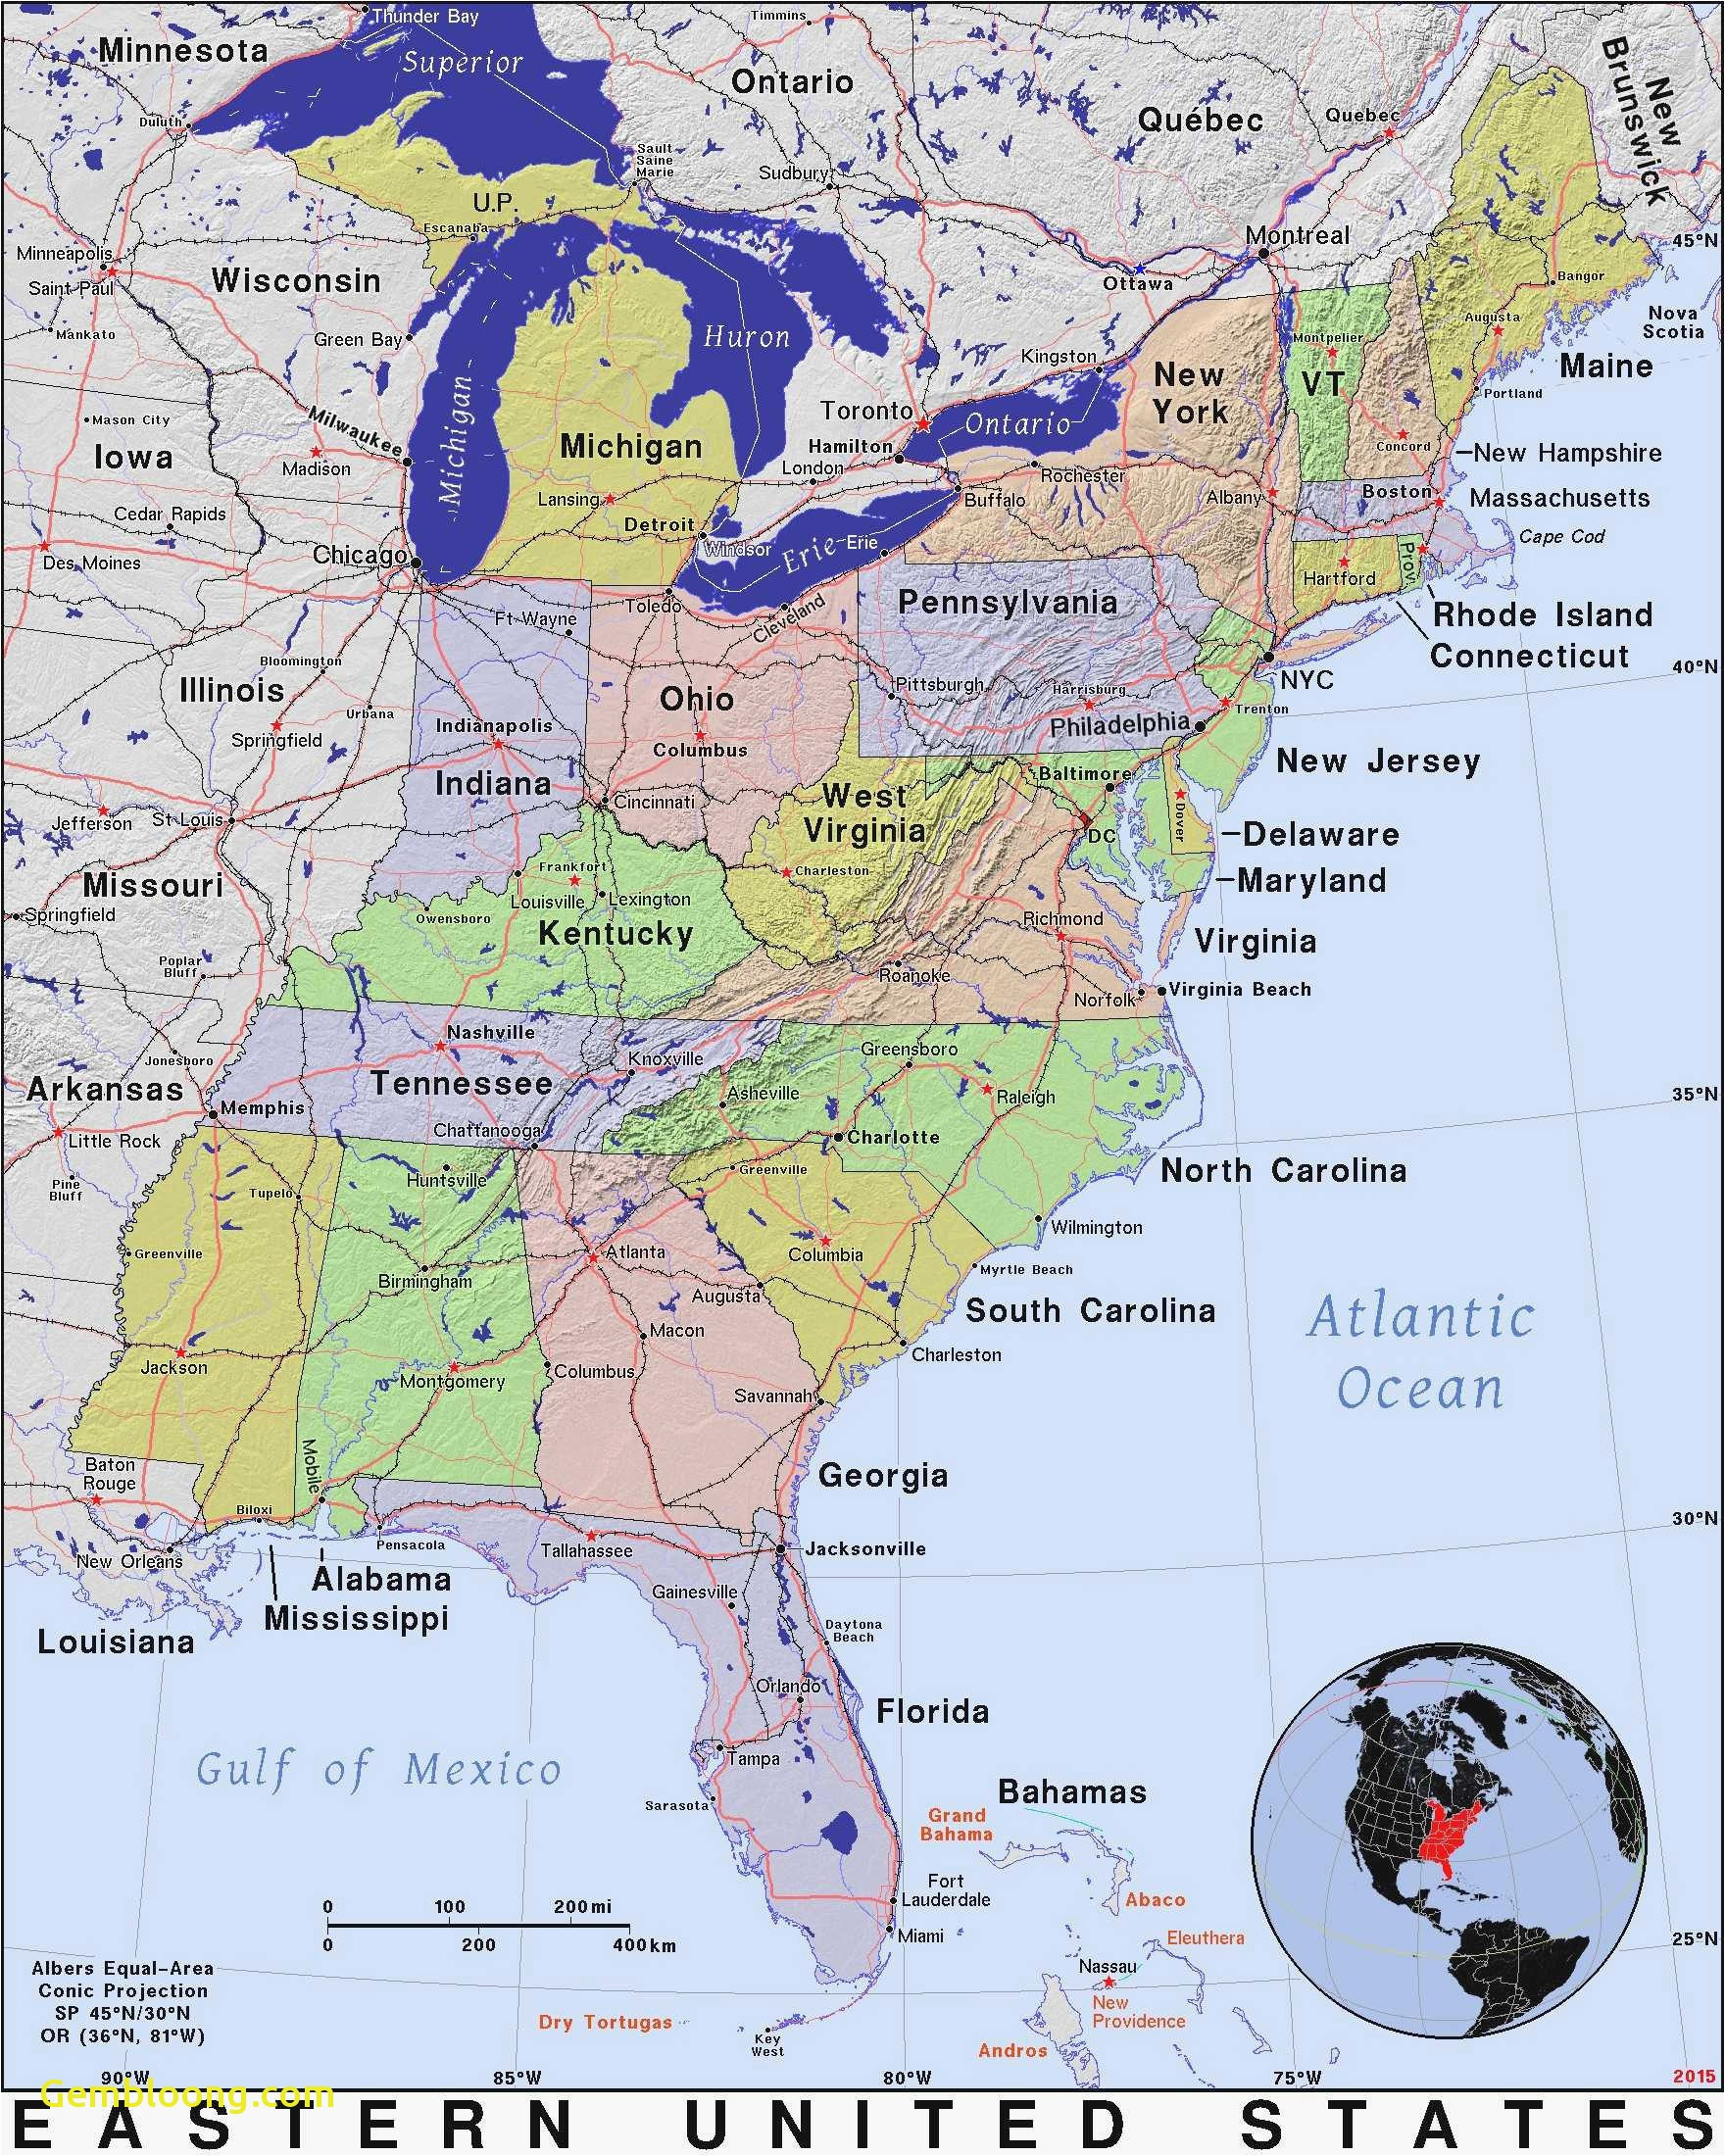 Map Of south East Michigan southeast Us Map Major Cities ... Images Of Southeast Us Maps on map of florida, map of cuba, map of northeast us, deep south, new england, united states of america, map of east coast, mid-atlantic states, history of slavery in the united states, map of louisiana, eastern united states, bible belt, american civil war, southern united states, great migration, map of mississippi, map of united states, map of north carolina, map of georgia, map of southeastern us, confederate states of america, east coast of the united states, southeastern united states, great plains, map of eastern us, western united states, map of south usa, map of us military bases, southwestern united states, map of midwest, map of south carolina, map of arkansas, map of southern us, map of northwest us, northeastern united states, map of west central us, midwestern united states, map of us highways,